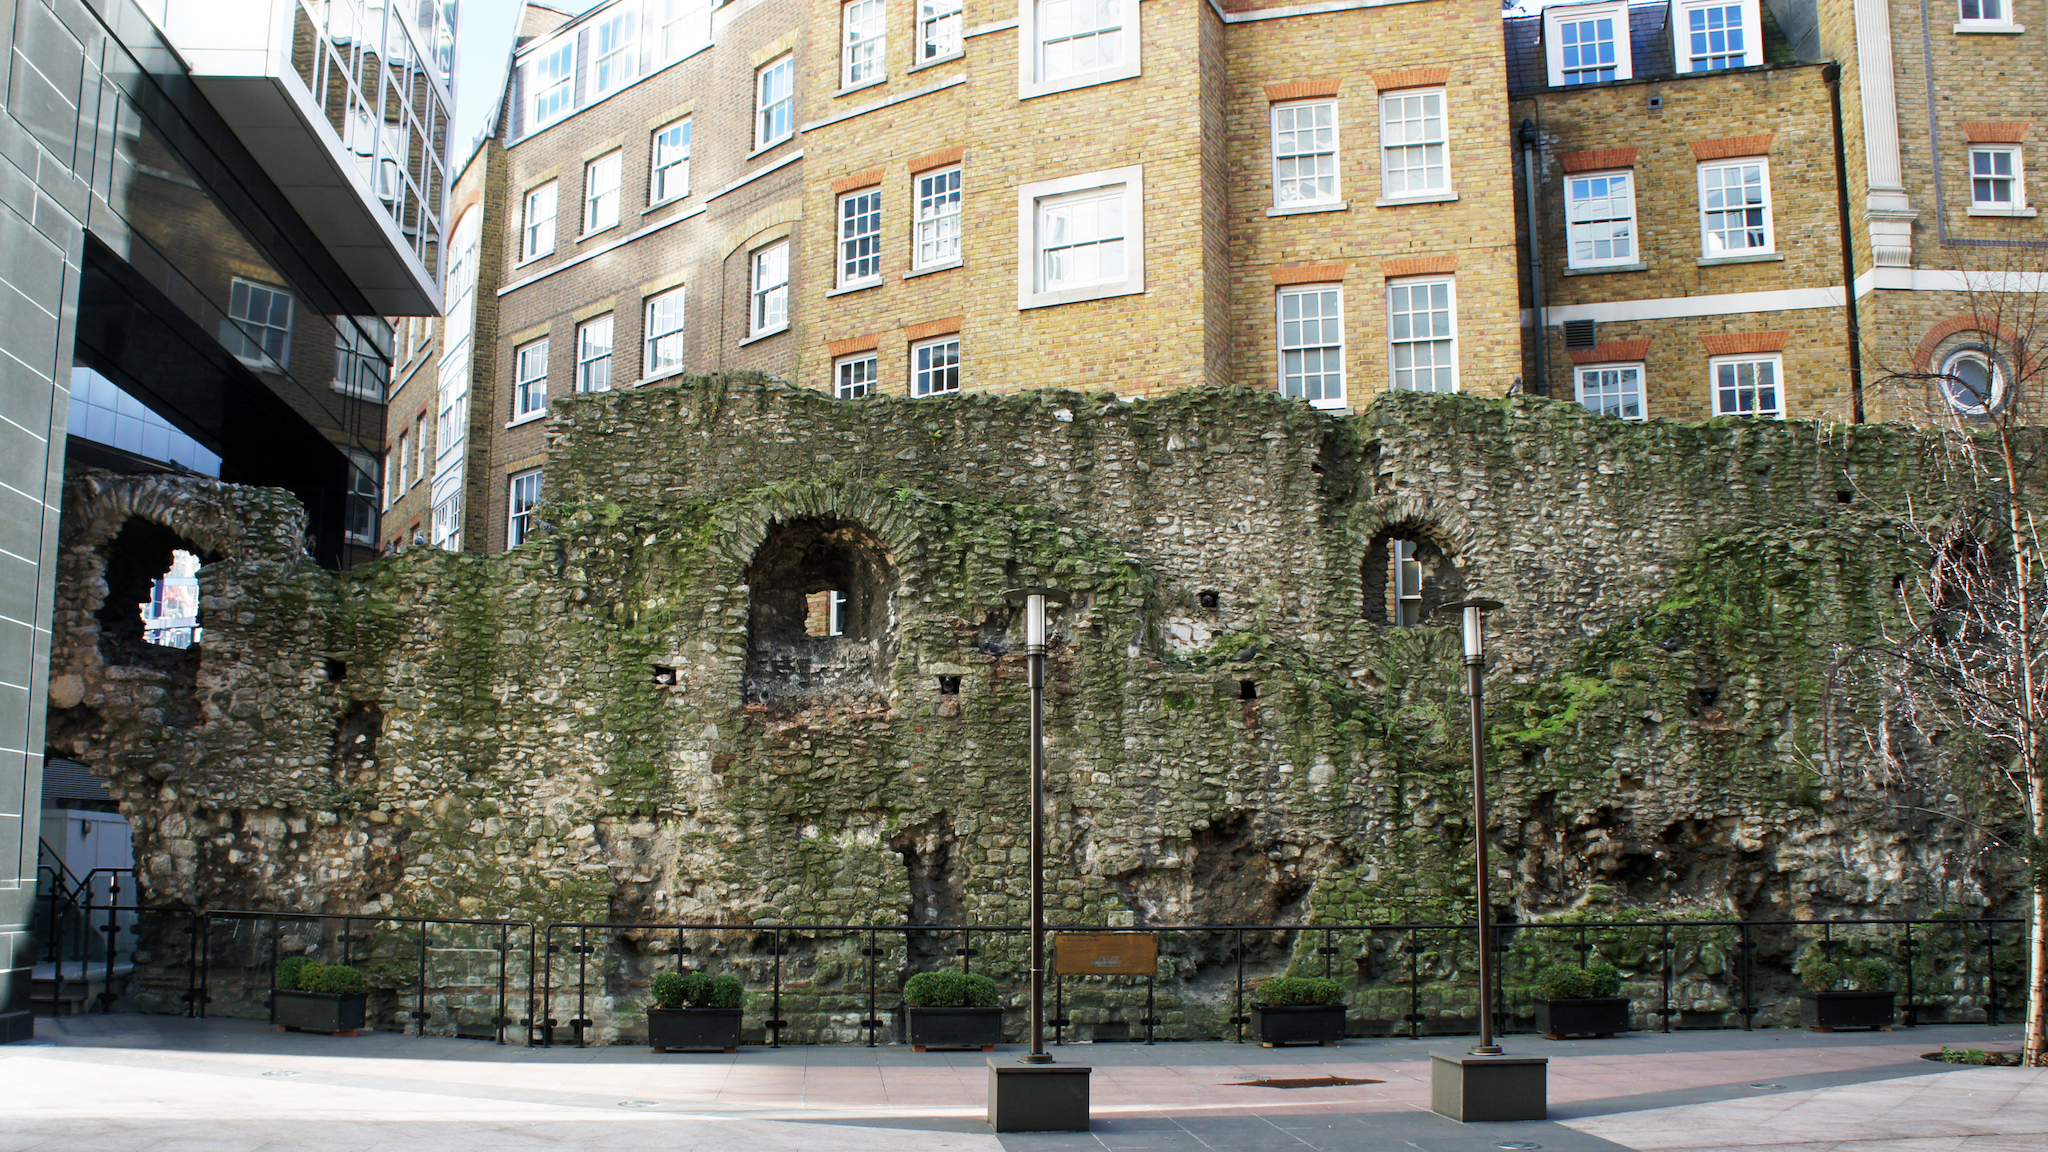 London Wall, Roman wall in City of London